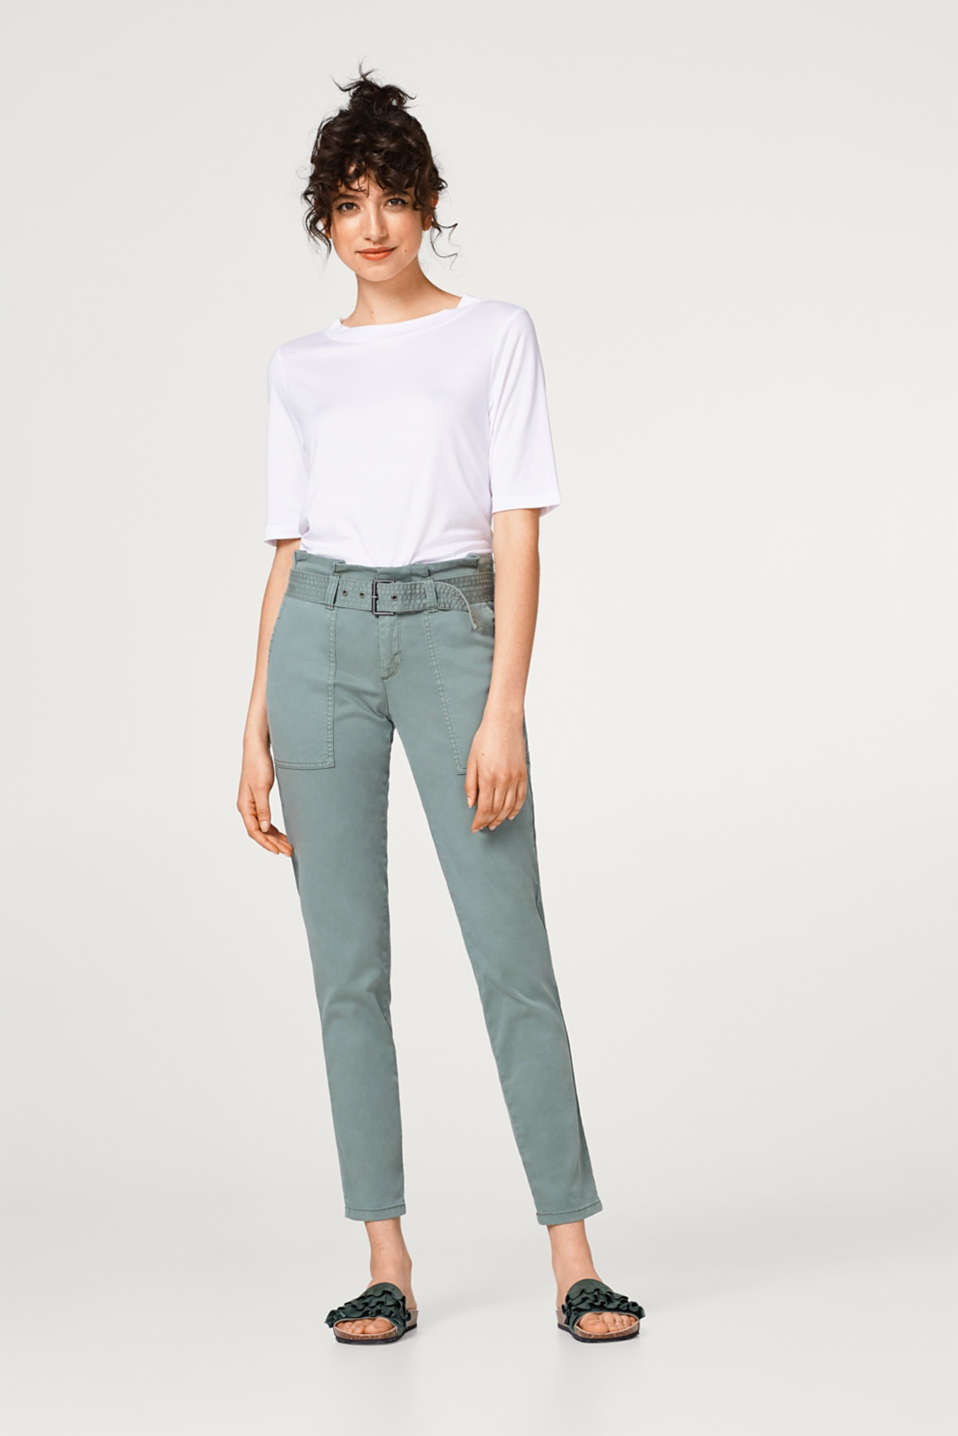 Esprit - Soft paper bag trousers with a belt and added stretch for comfort